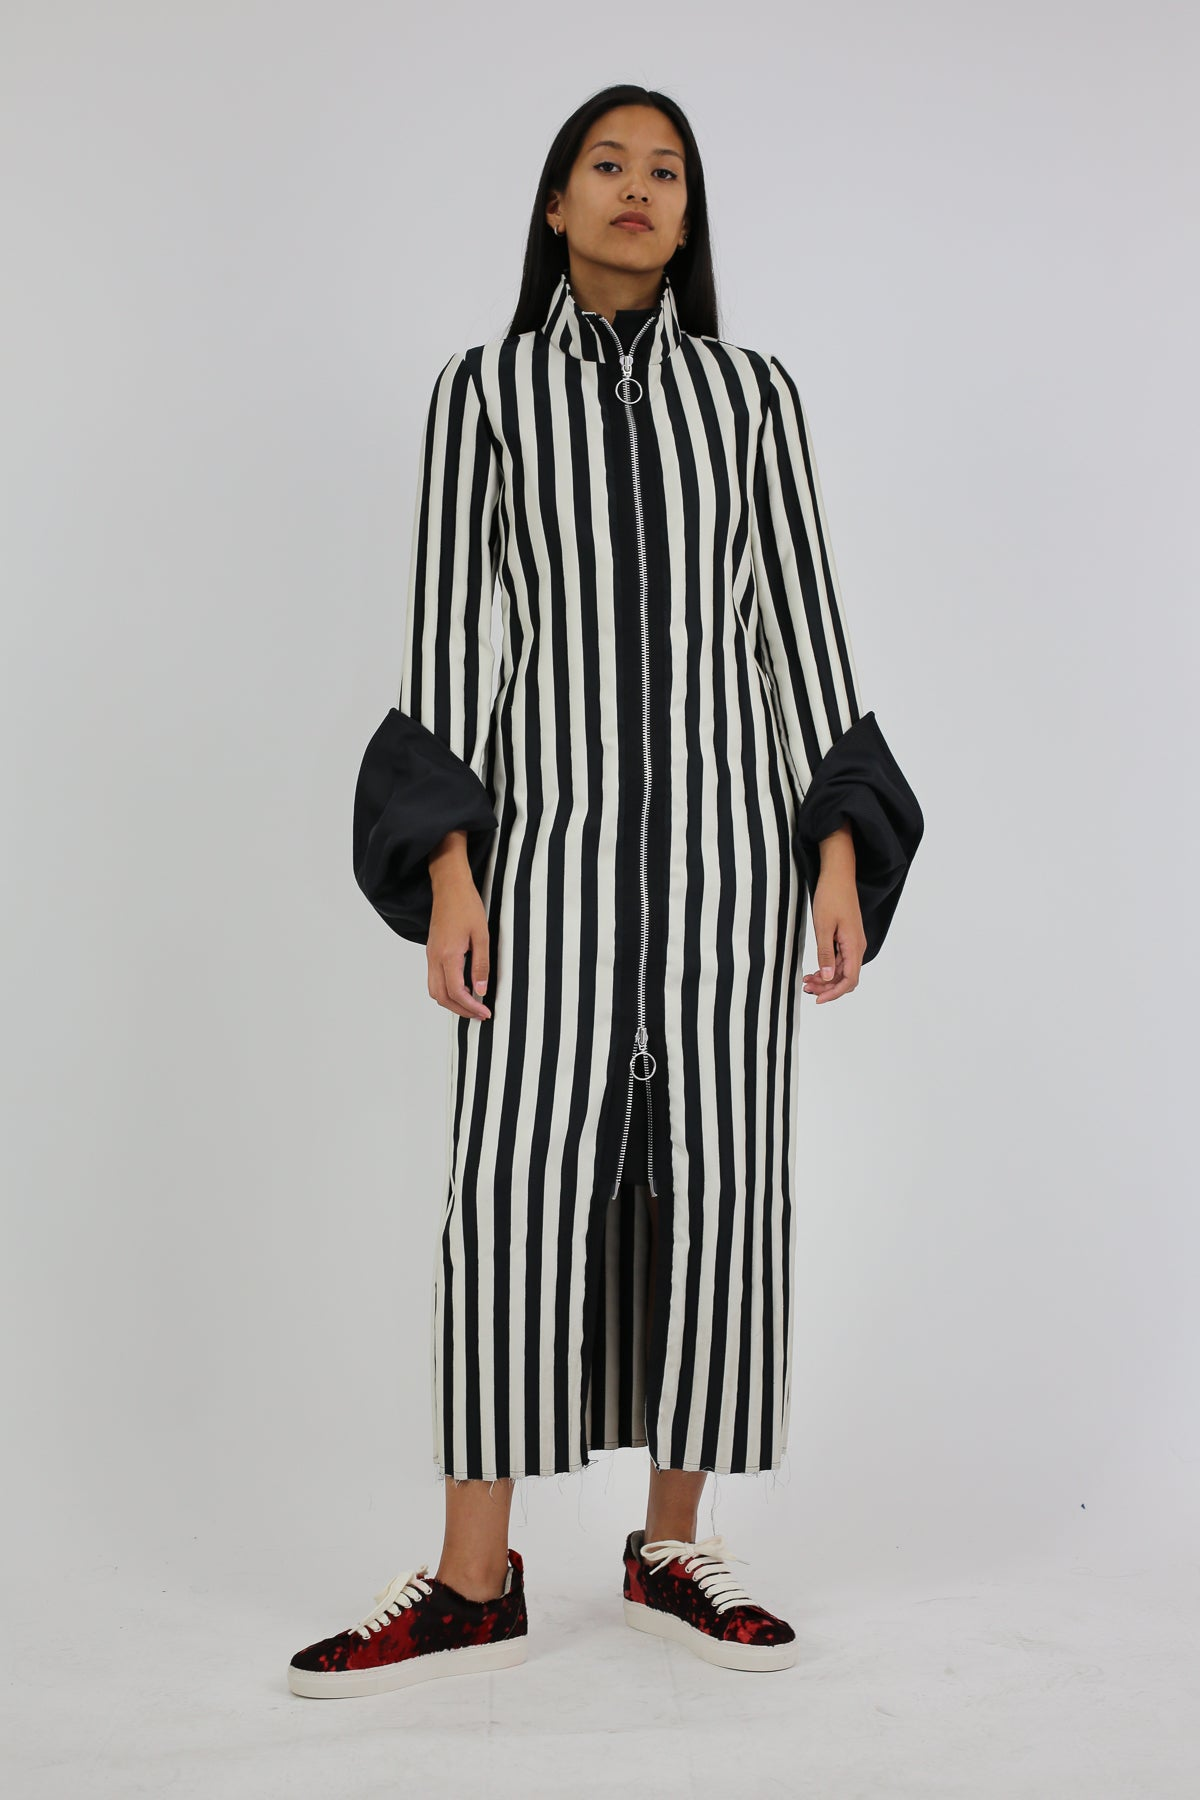 OVERSIZED SHIRT WITH LARGE CUFF